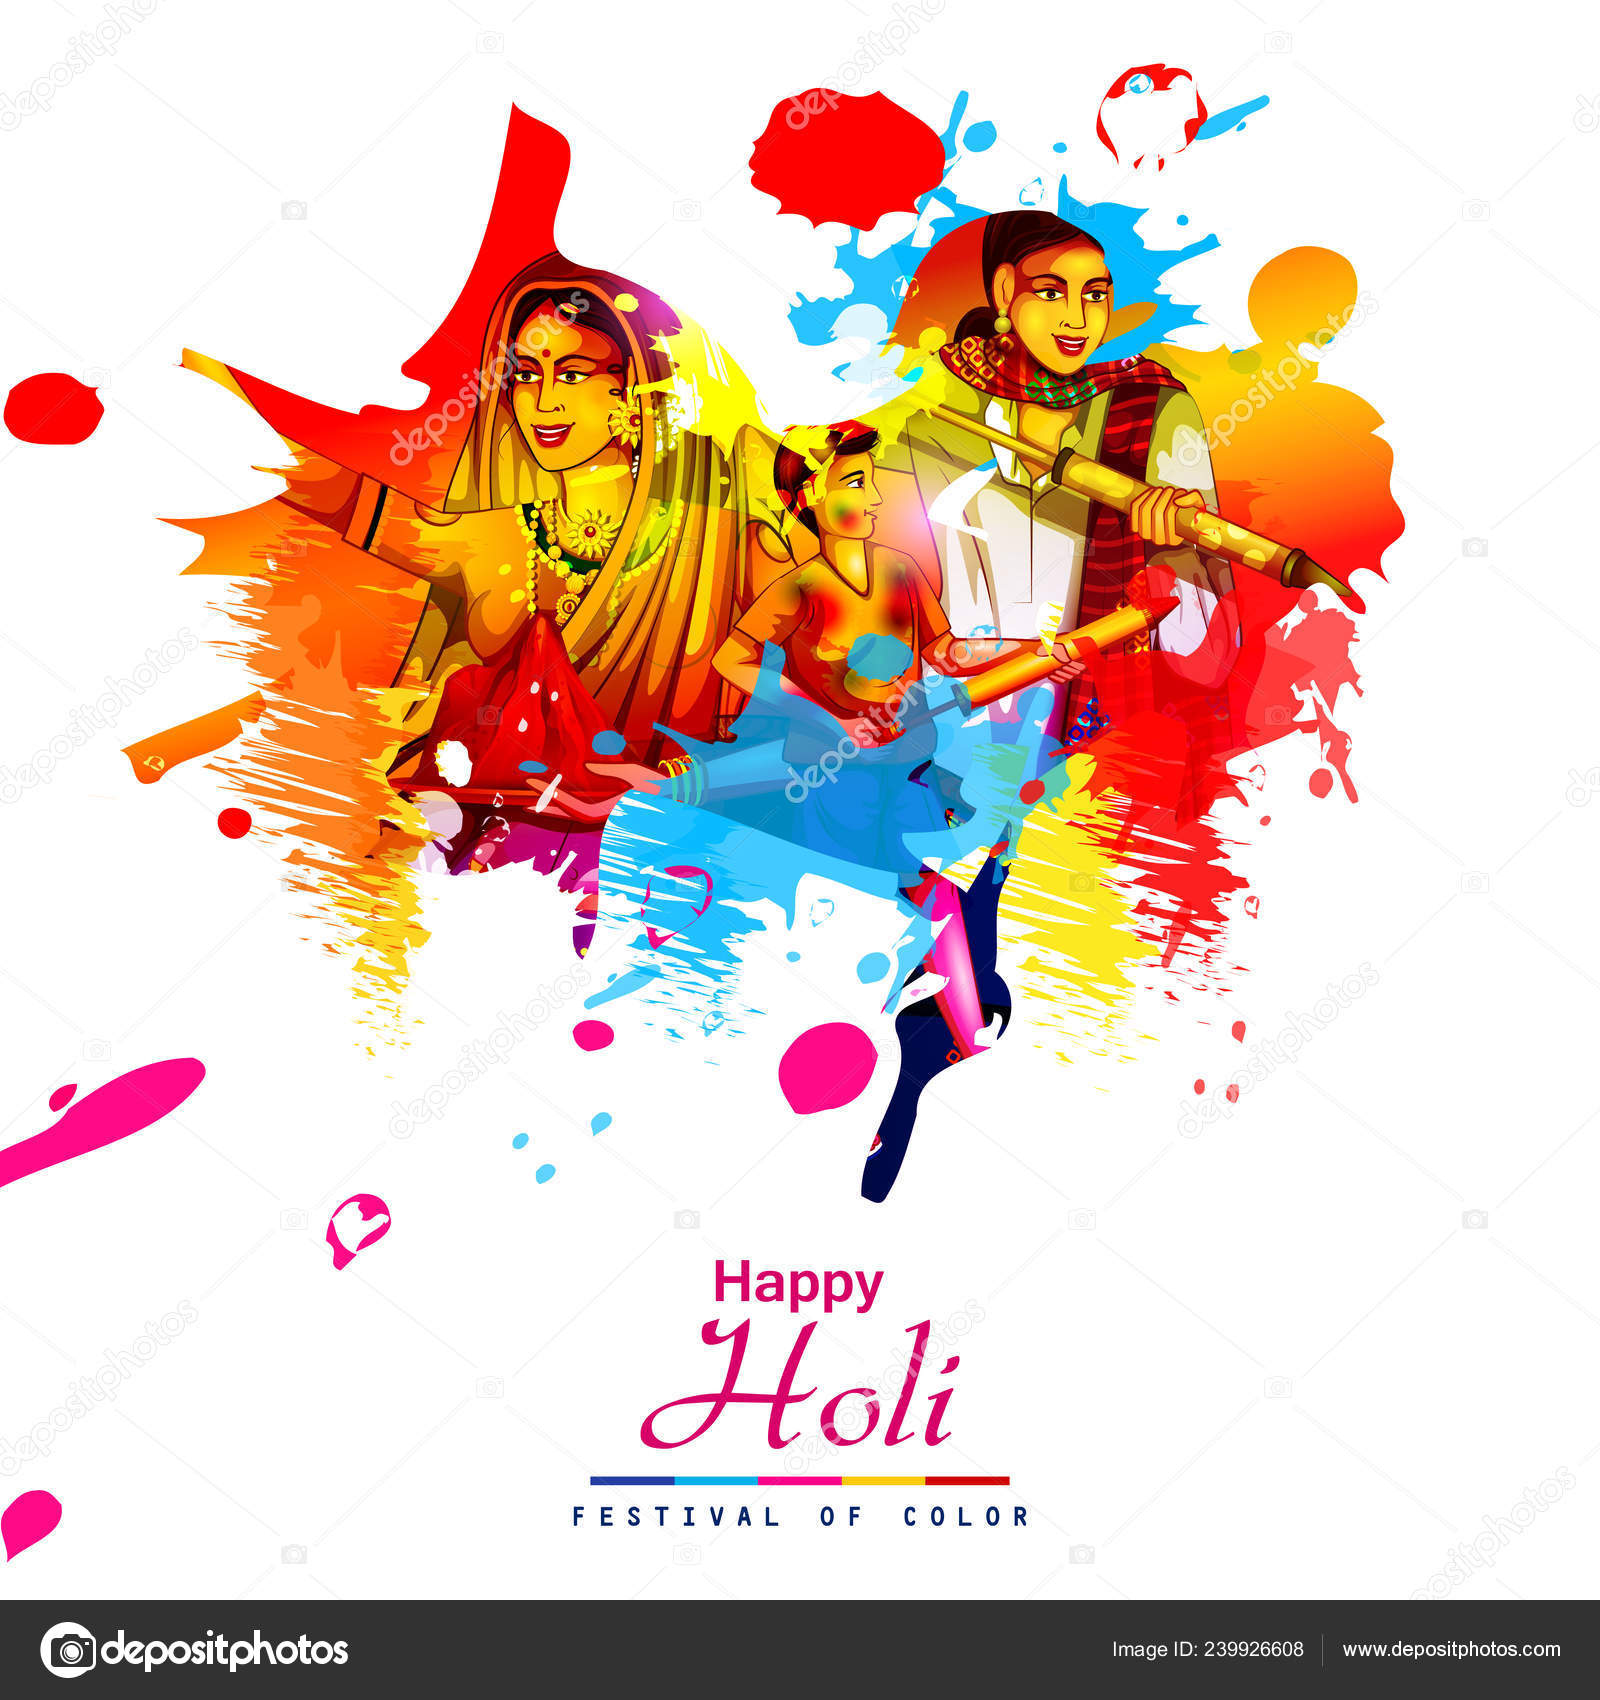 Vector Illustration Of Indian People Playing Colorful Happy Hoil